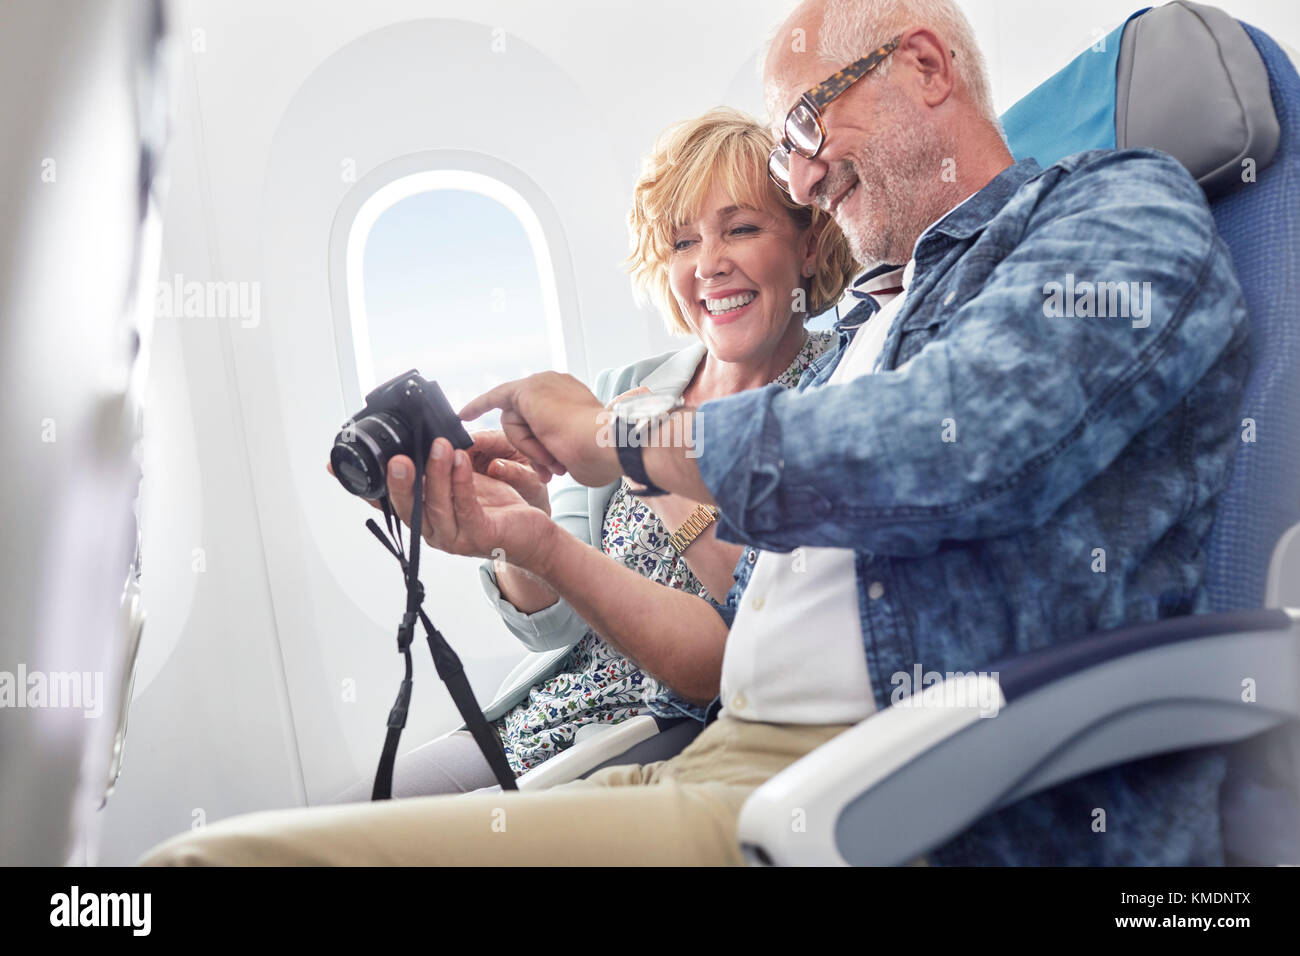 Mature couple looking at photos on digital camera on airplane - Stock Image